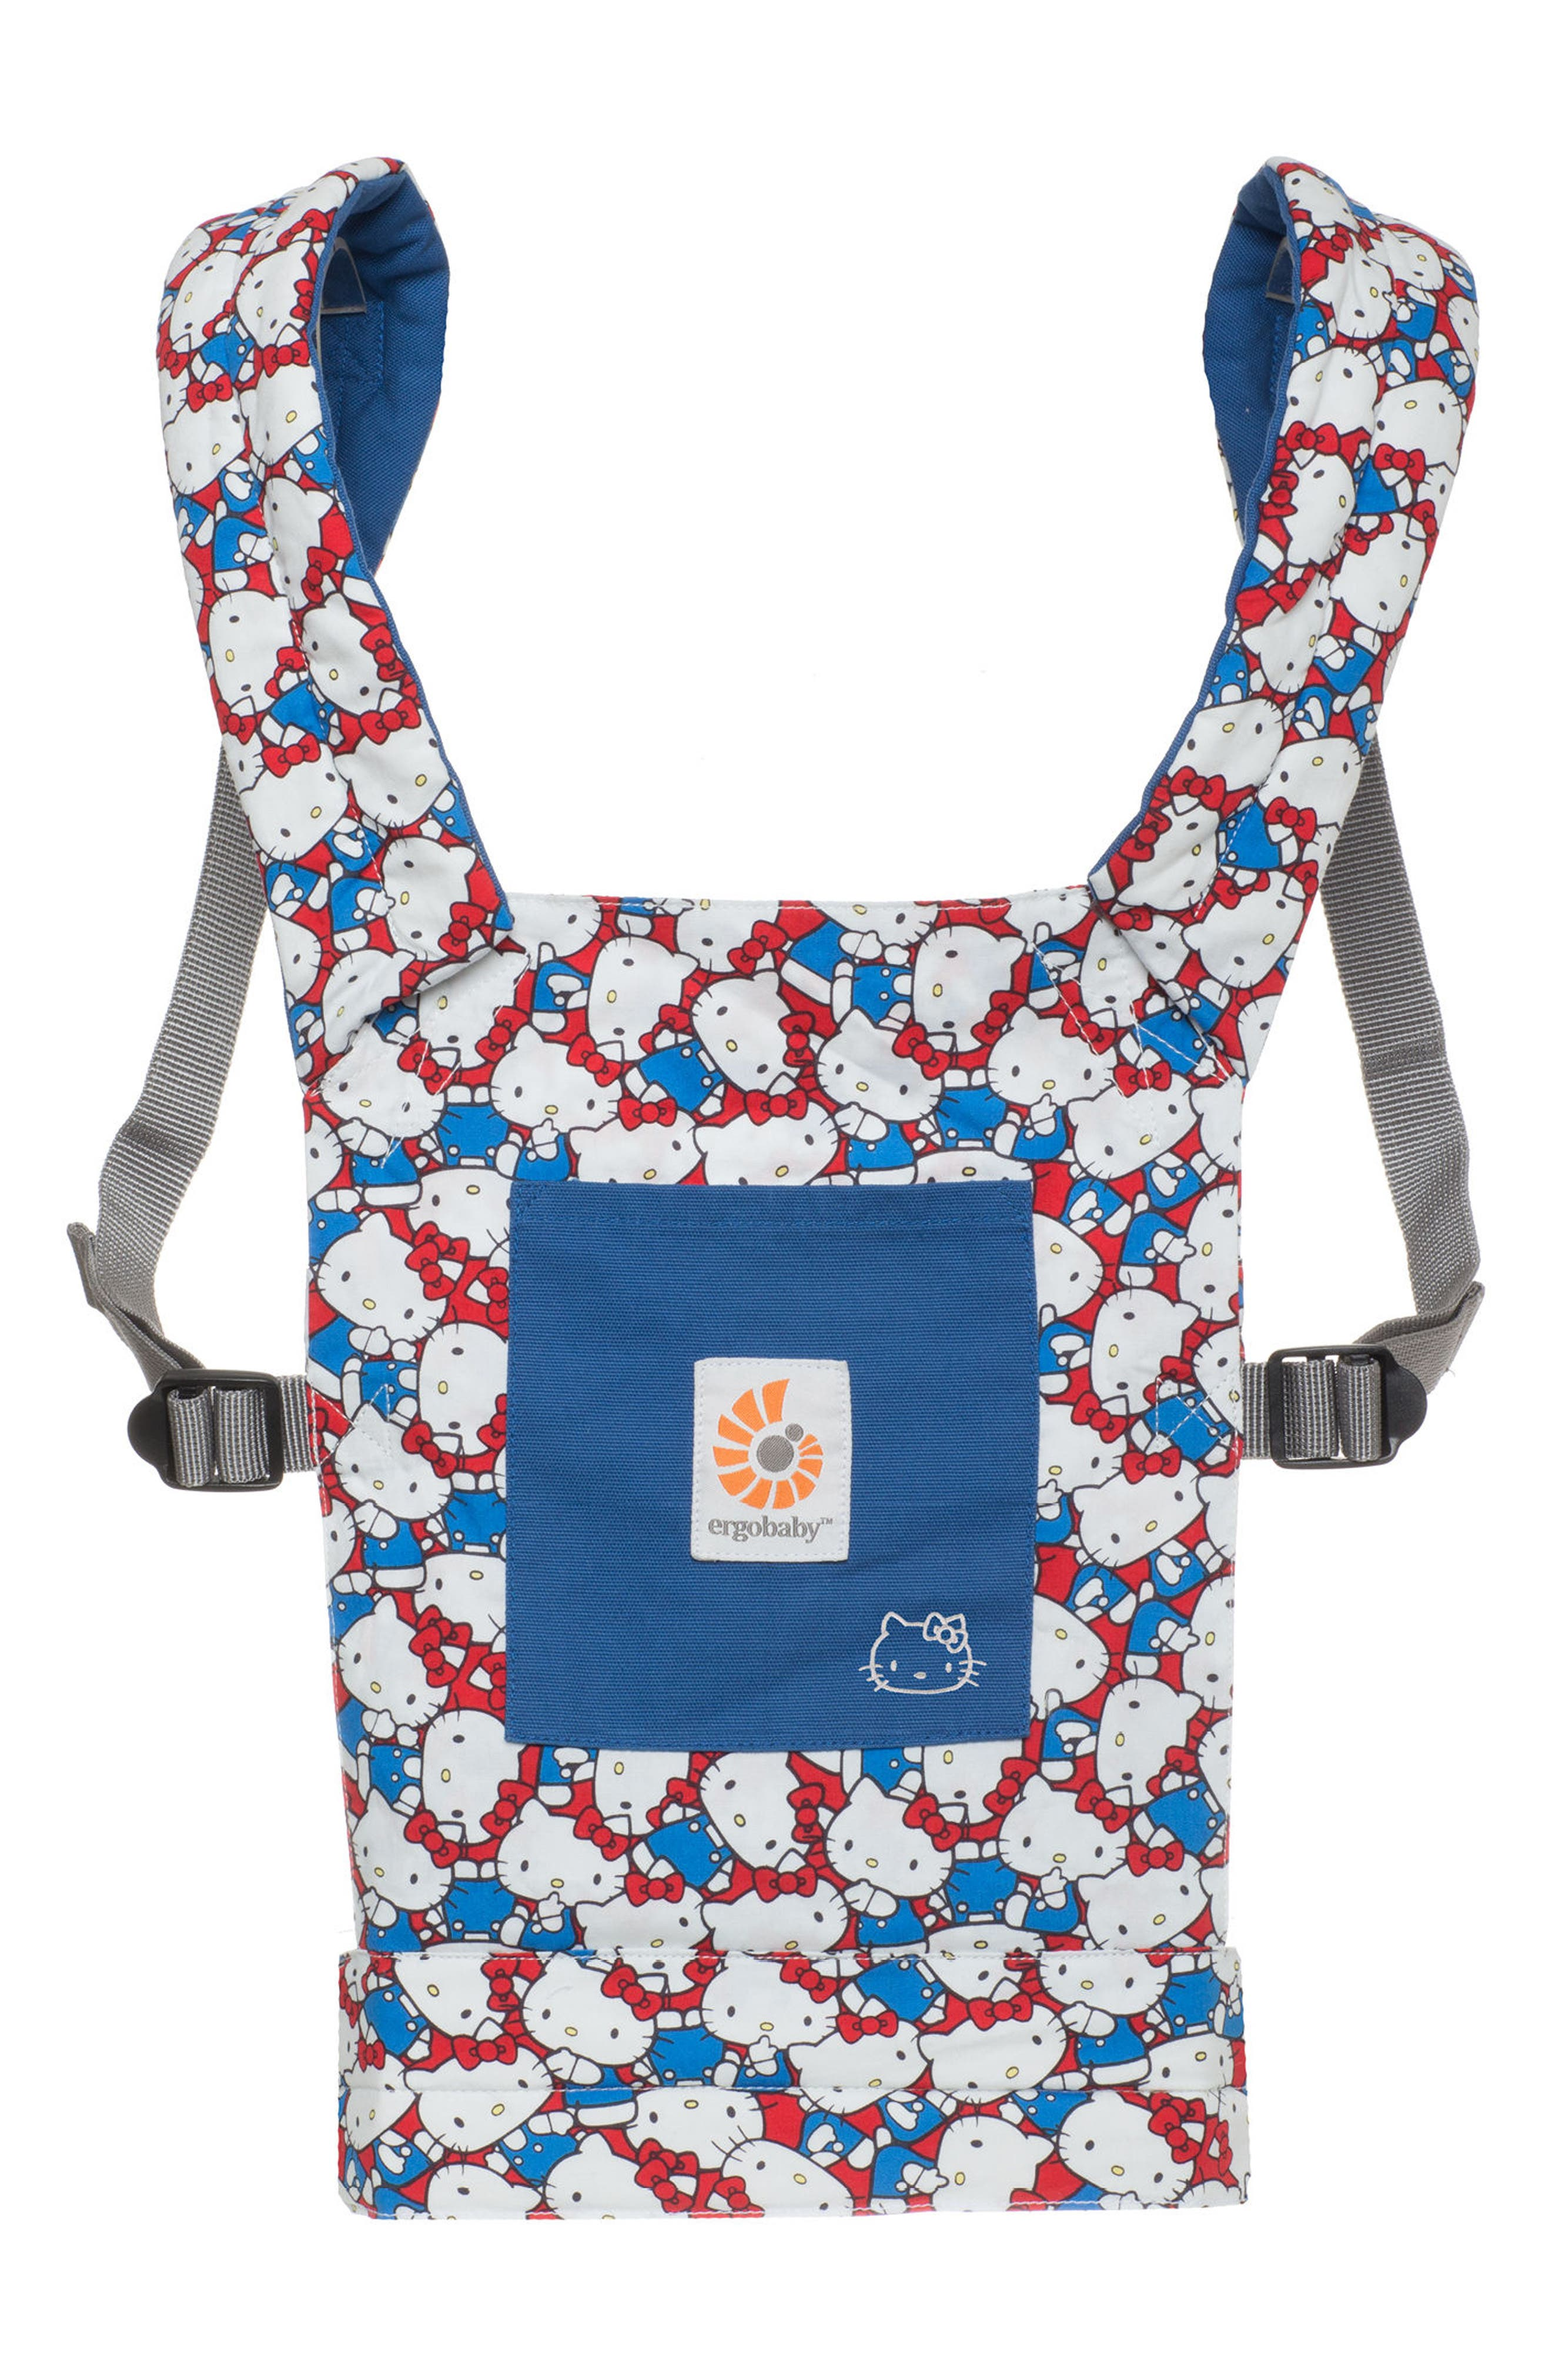 x Hello Kitty<sup>®</sup> Doll Carrier,                         Main,                         color, 400